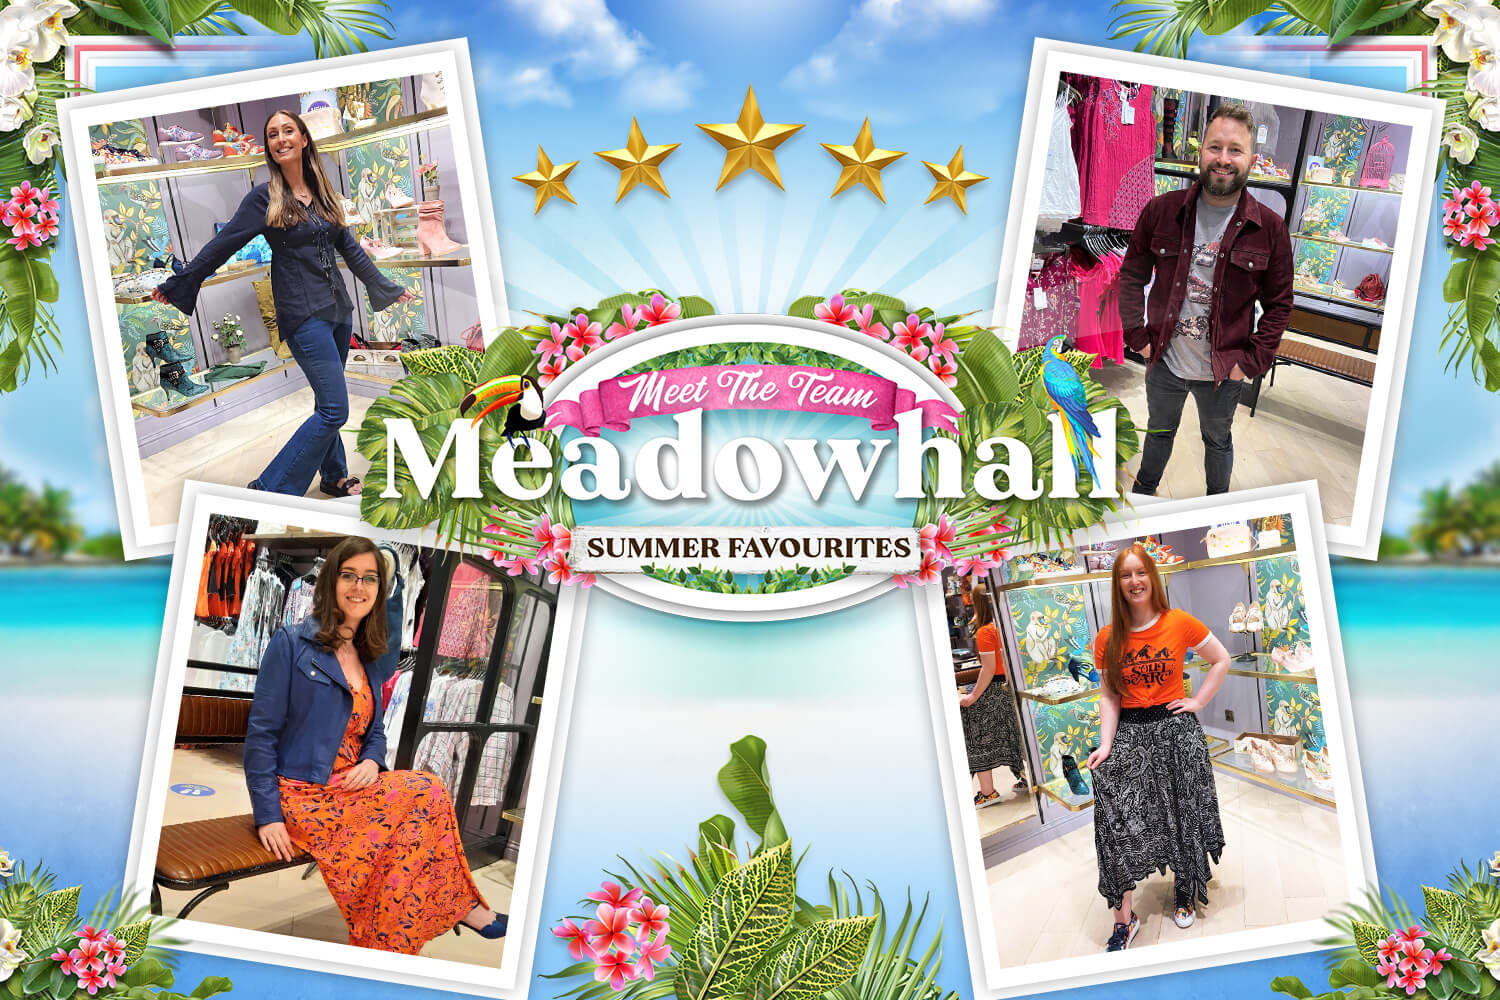 Meet The Meadowhall Store Team: Summer Favourites